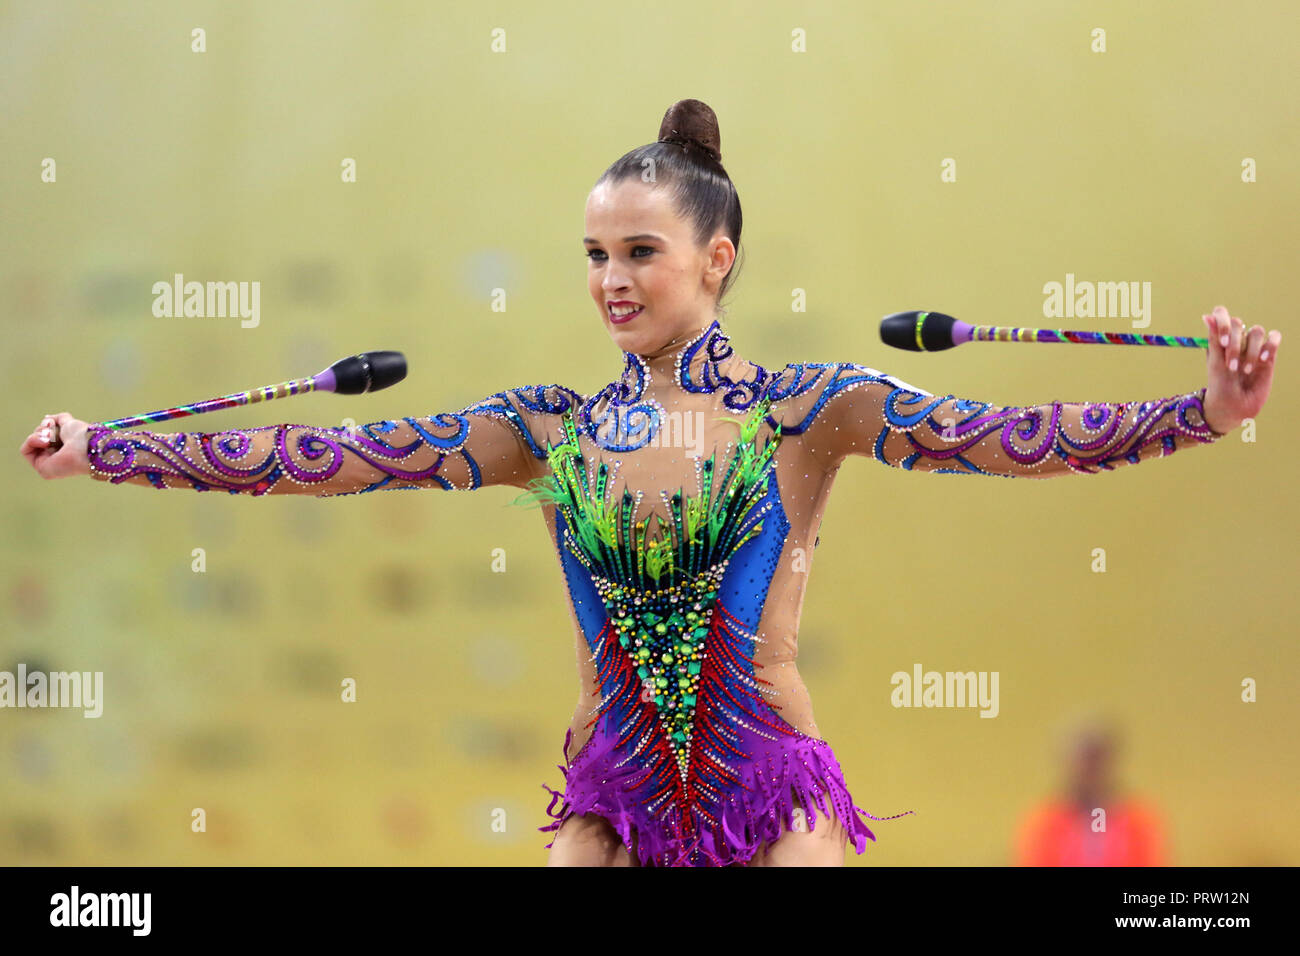 Sofia, Bulgaria - 14 September, 2018: Nicol ZELIKMAN from Israel performs with clubs during The 2018 Rhythmic Gymnastics World Championships. Individu - Stock Image